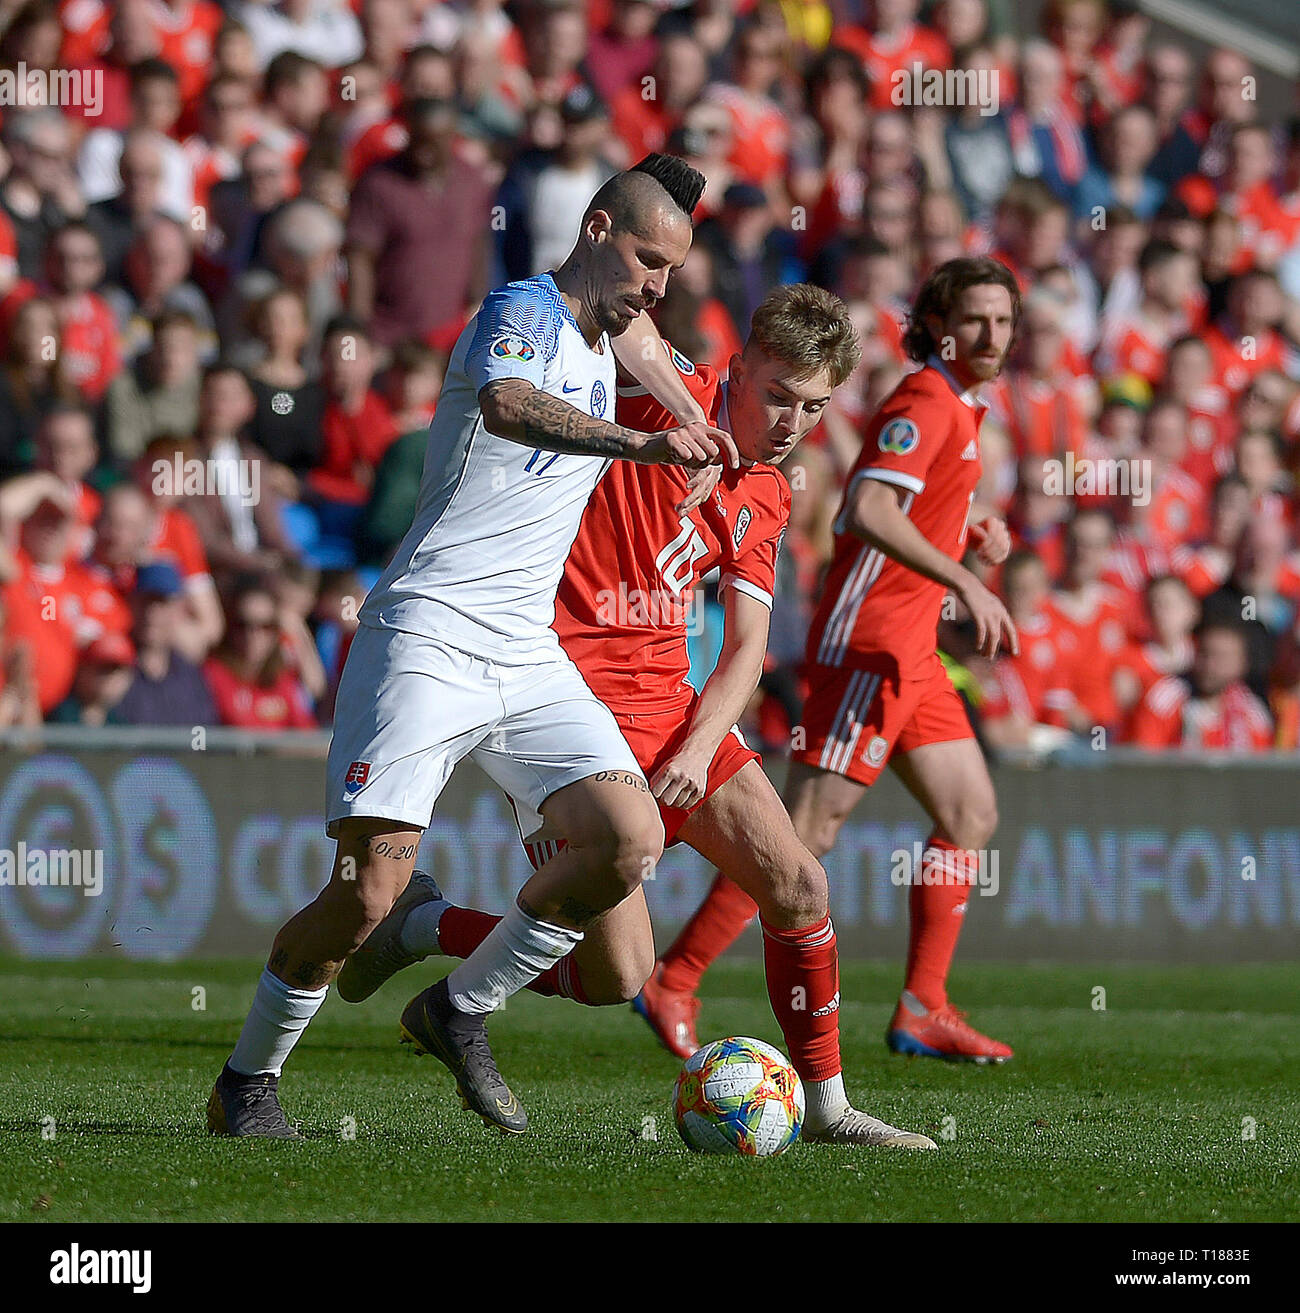 Cardiff, Wales, UK. 24th Mar 2019. Football, UEFA European Qualifiers Group E, Wales v Slovakia, 24/03/19, Cardiff City Stadium, K.O 2PM  Wales' David Brooks challenges Slovakia's Marek Hamsik  Andrew Dowling Credit: Andrew Dowling/Influential Photography/Alamy Live News Stock Photo